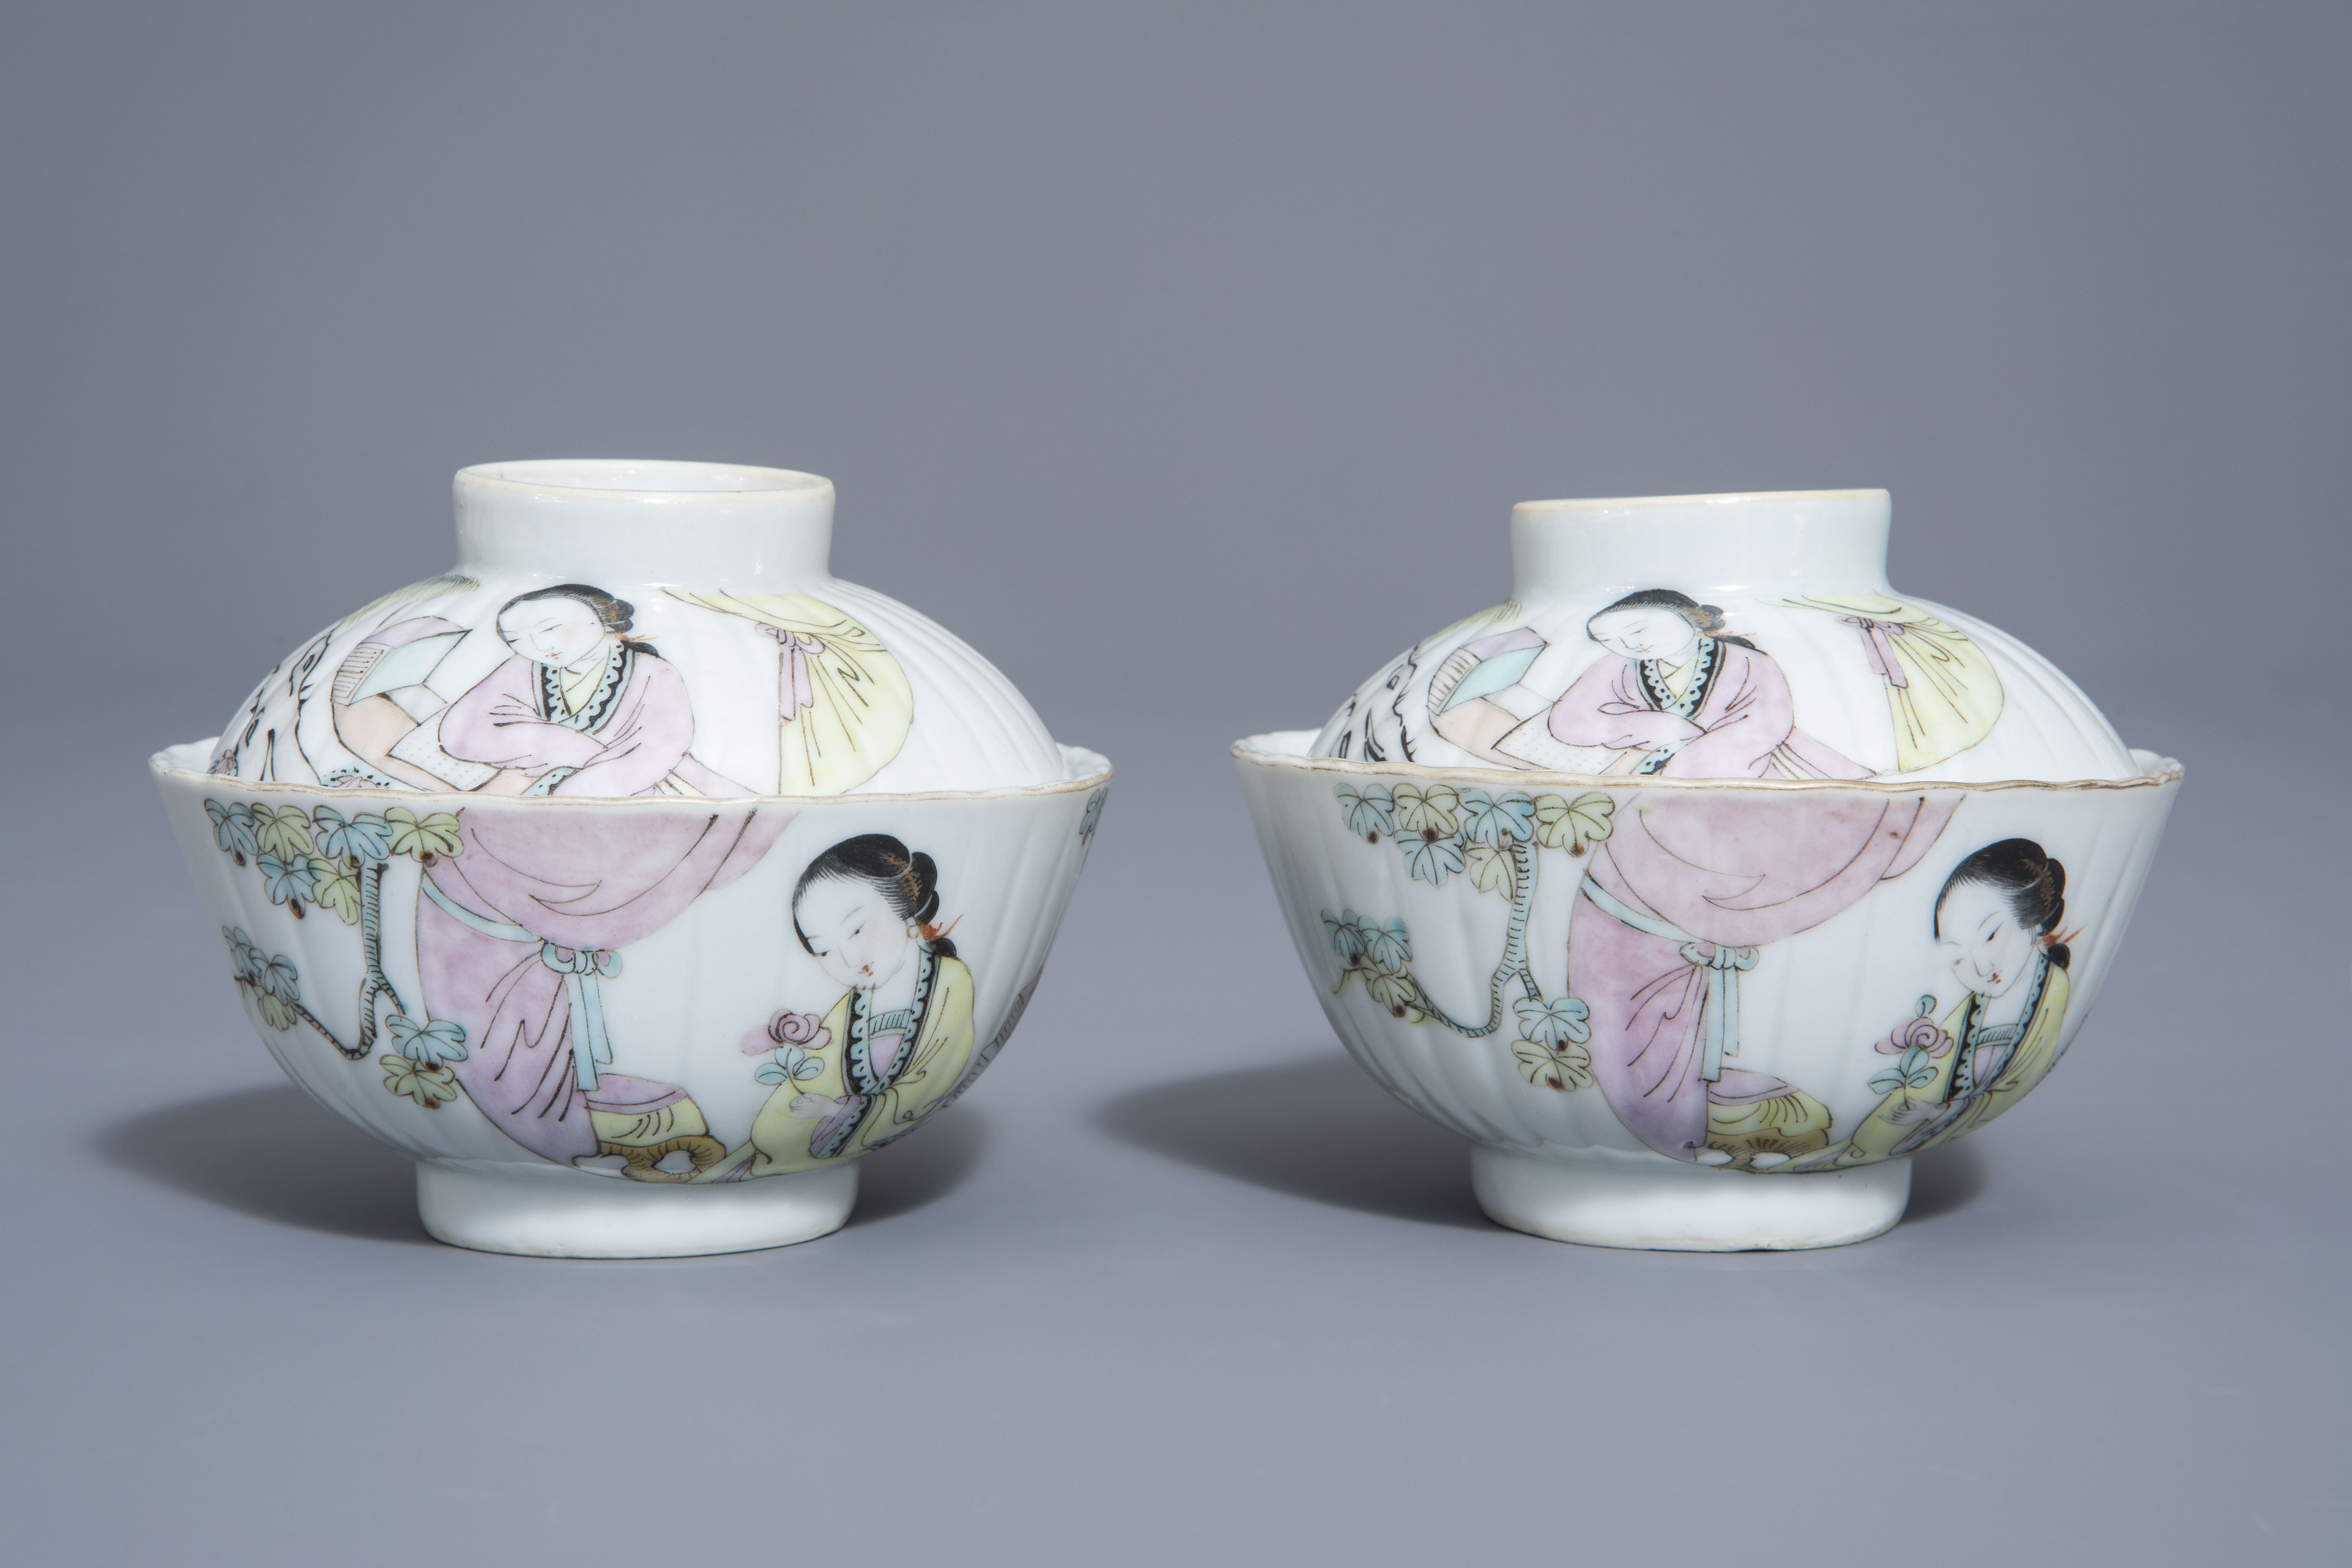 A Chinese seven-piece qianjiang cai tea service with figurative design, 19th/20th C. - Image 8 of 19